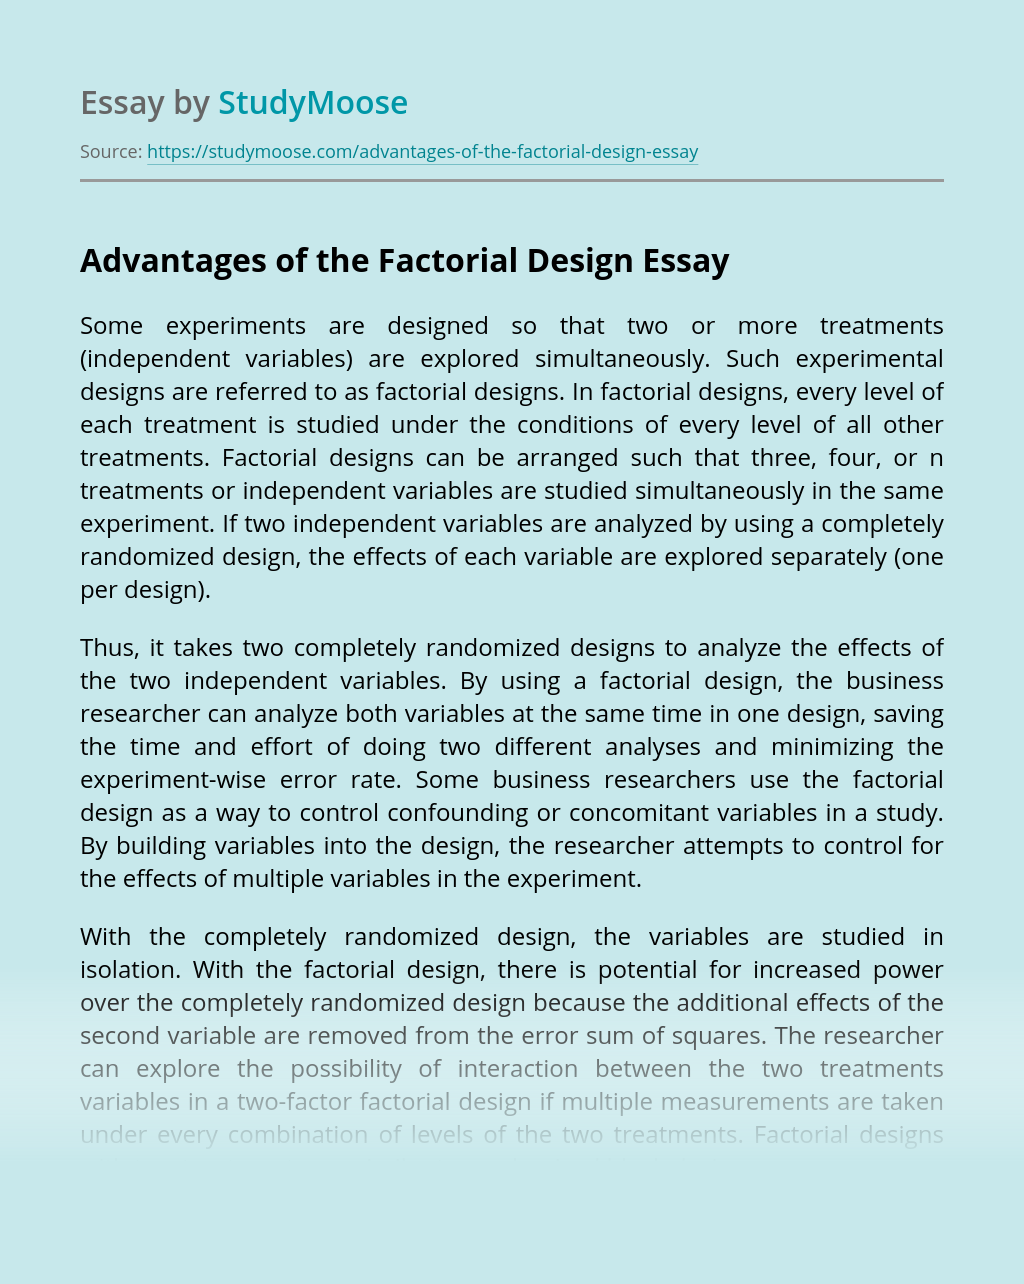 Advantages of the Factorial Design